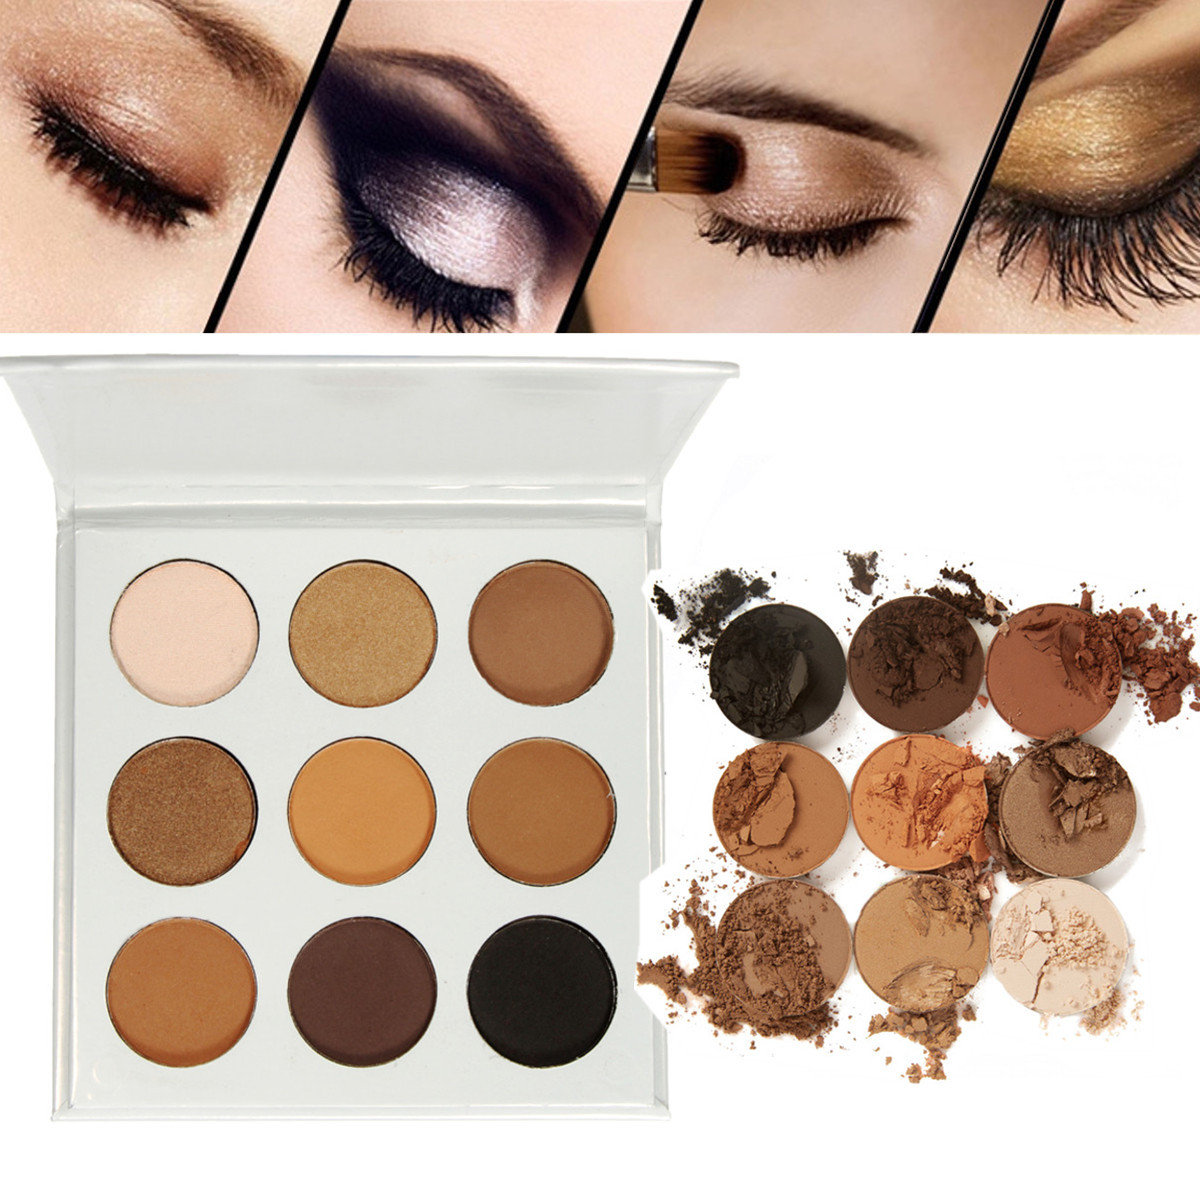 9 Colors Eye Shadow Makeup Palette Shimmer Matte Eyeshadow Cosmetic